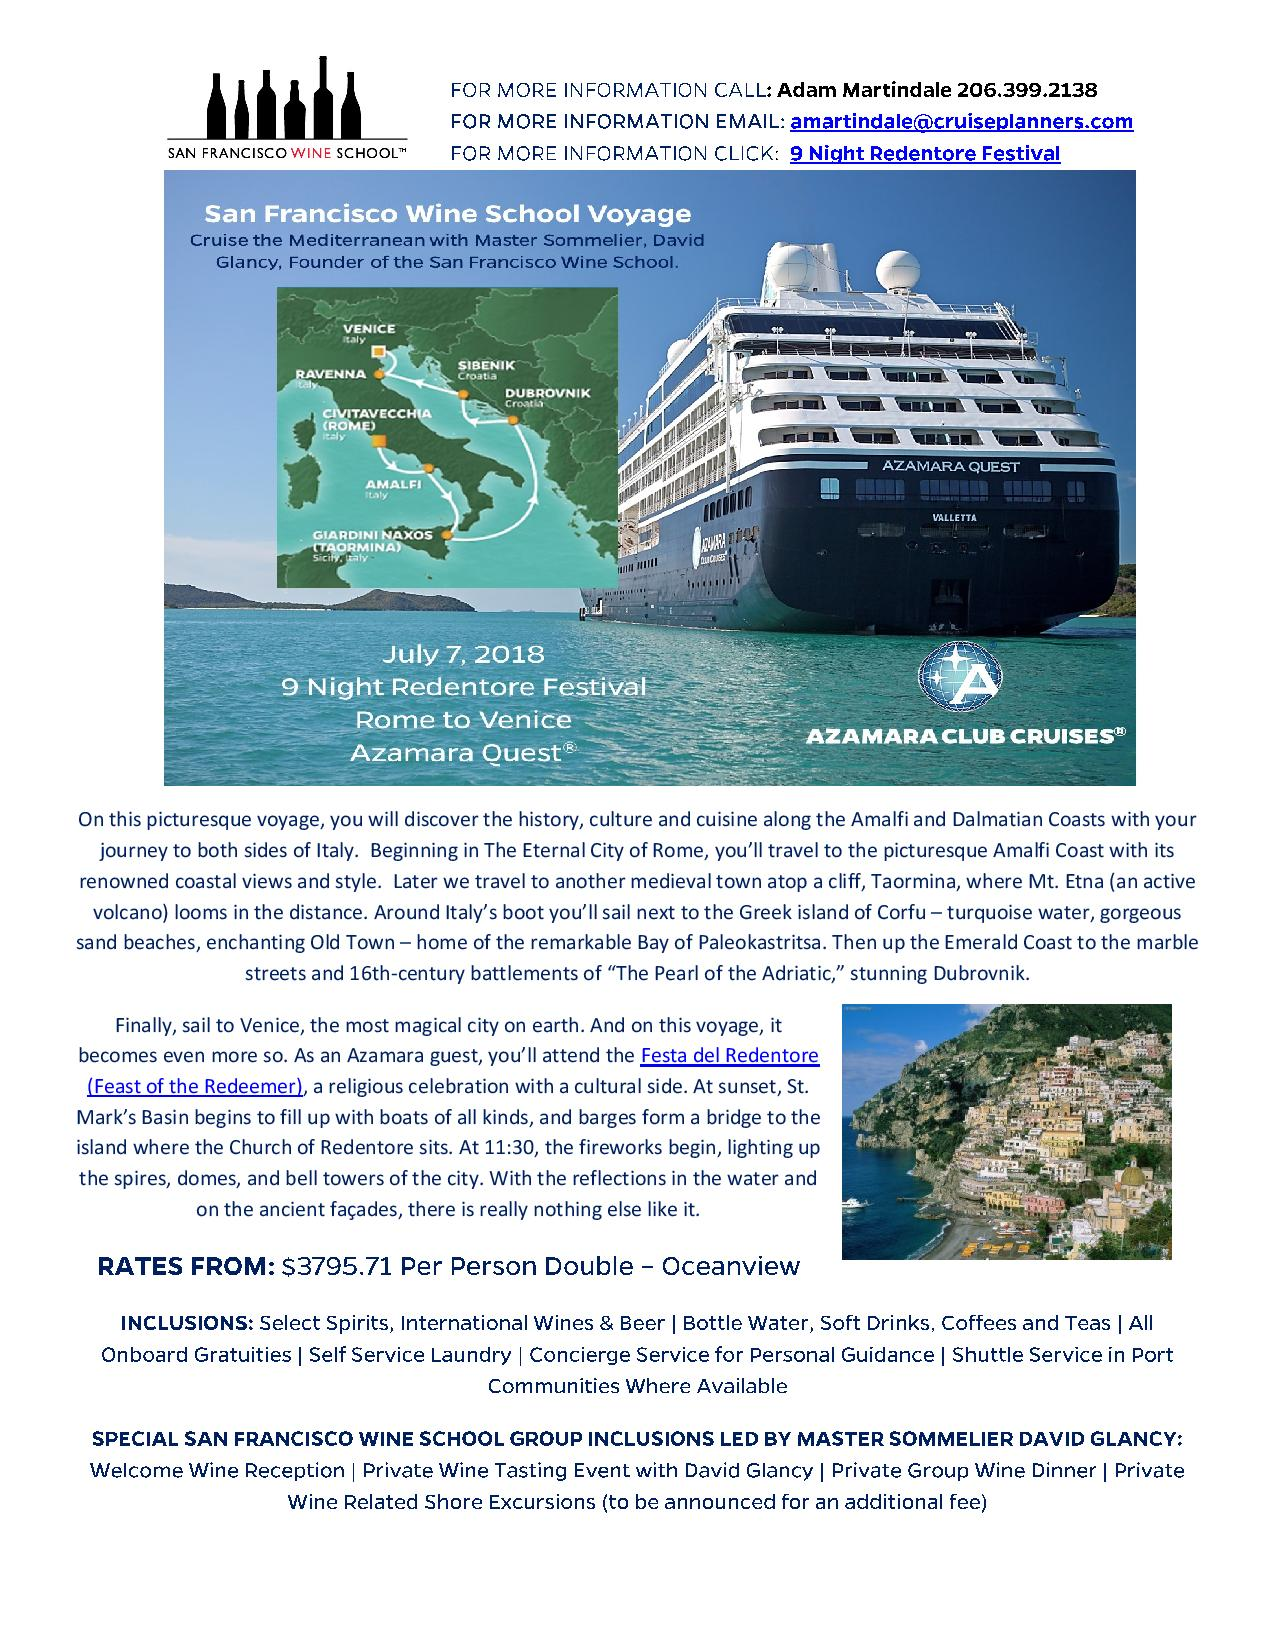 Wine Education Cruise to Italy & Croatia with David Glancy, MS July 7-16